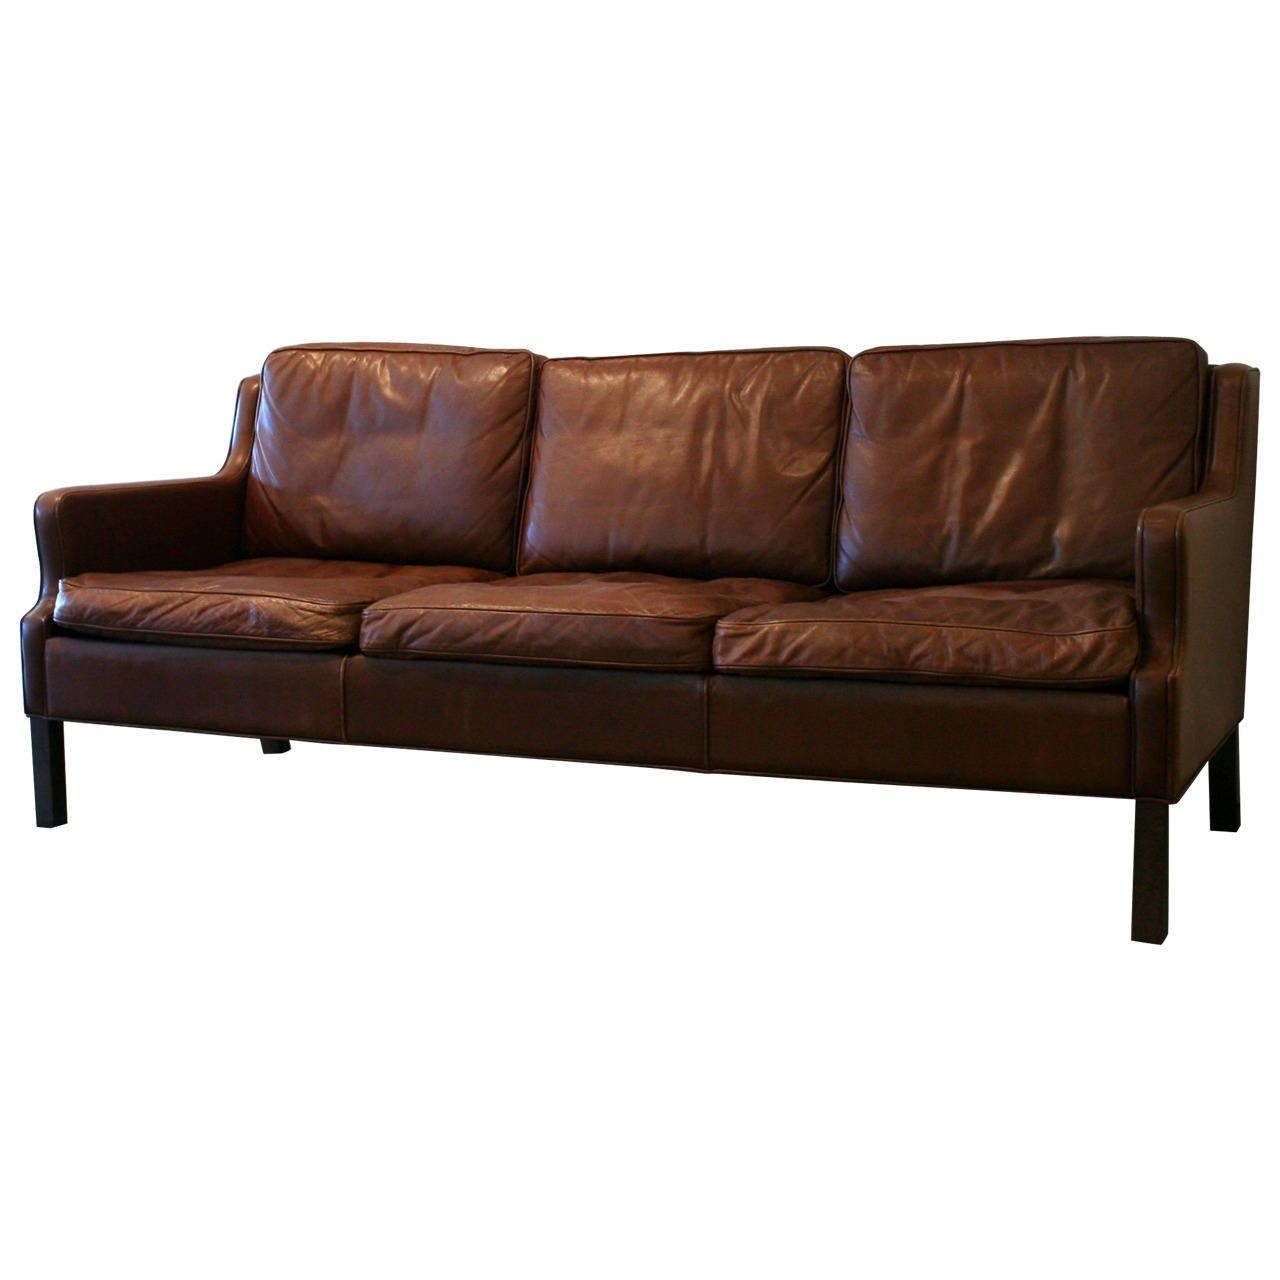 Vintage Danish Brown Leather Sofa At 1Stdibs for Danish Leather Sofas